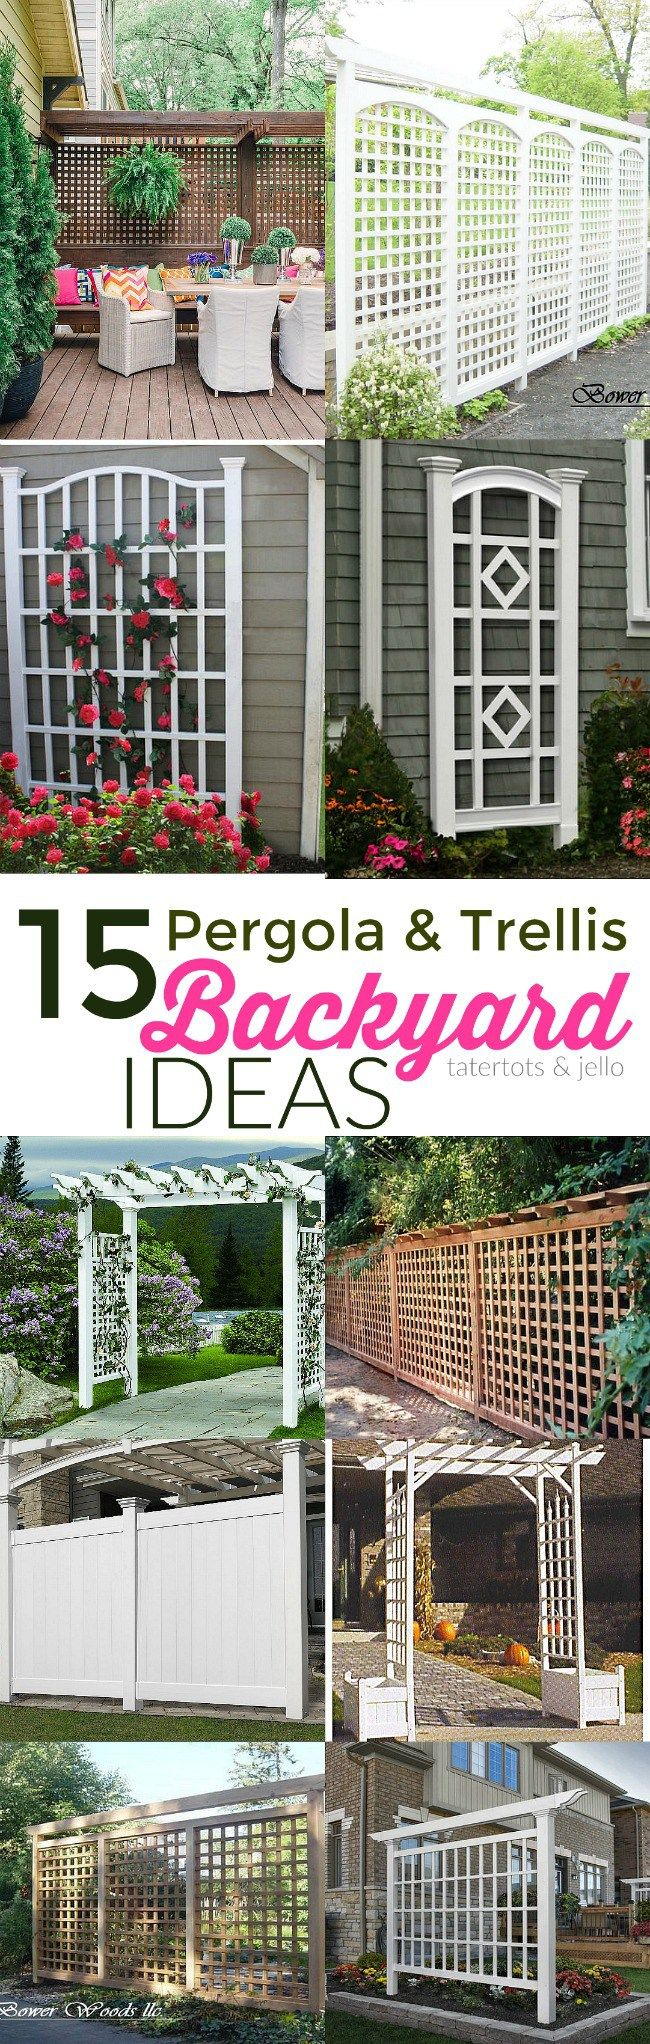 15 Trellis And Pergola Backyard Ideas Tatertots Jello Patio